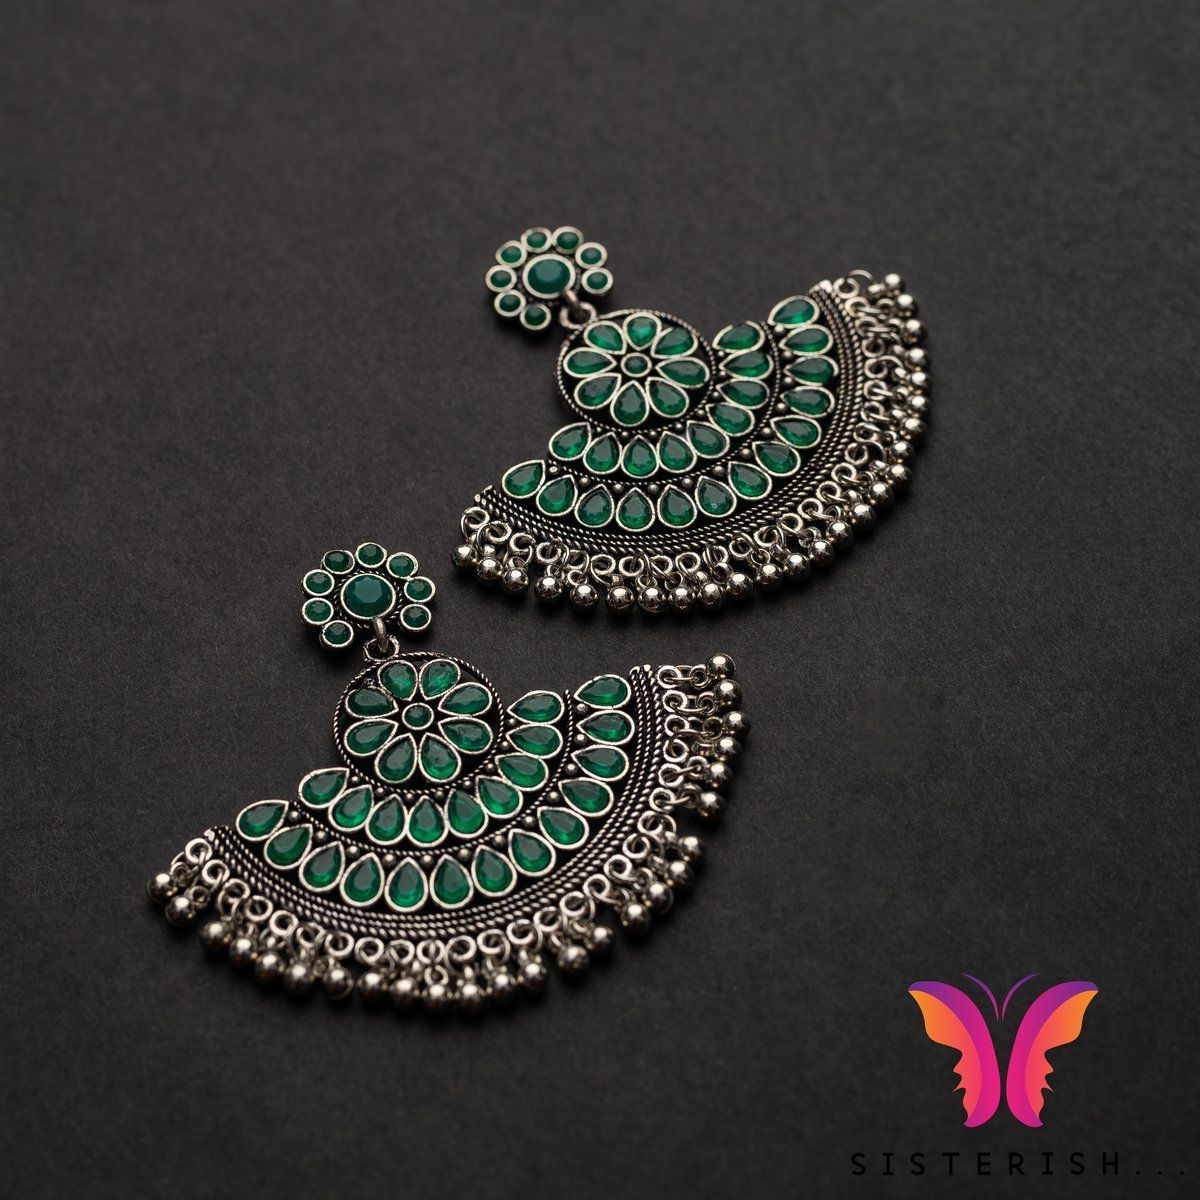 846c0210a8f7f Beautiful Designer Chand Bali Earrings | Sisterish German Silver ...